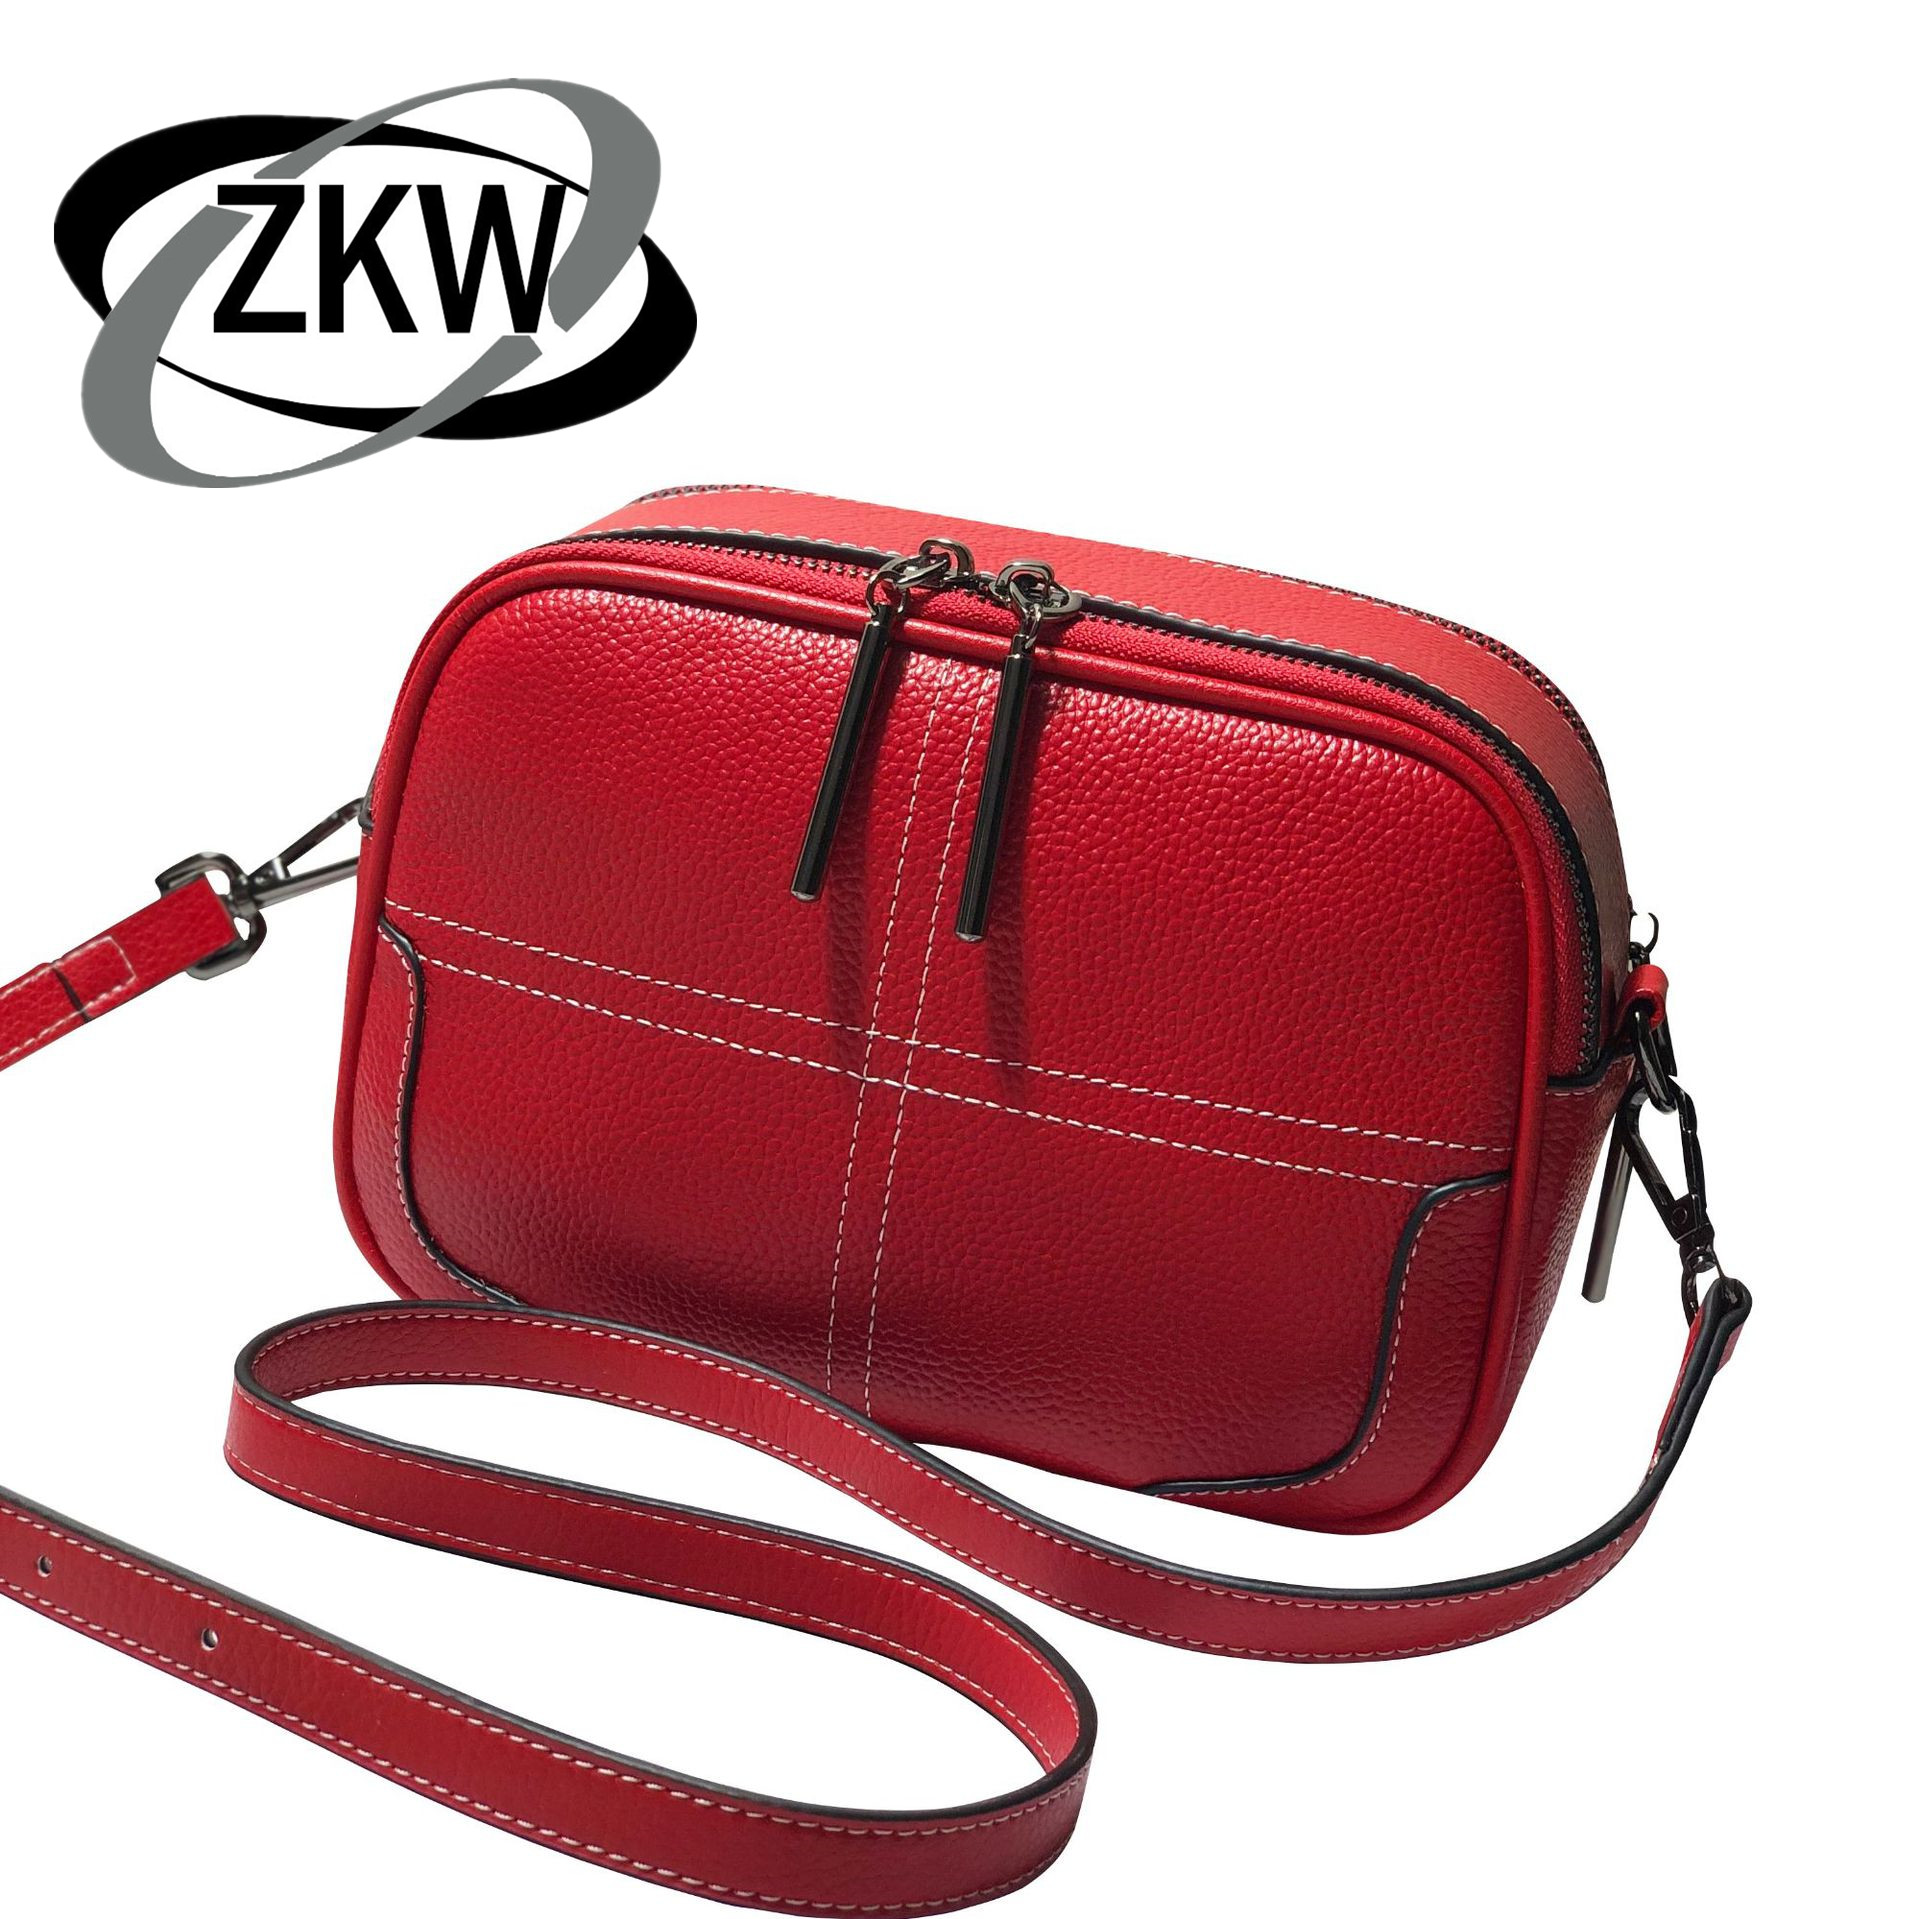 ZKW 2019 New arrival Designer genuine leather Women's Handbags High Quality Real Leather bag for Fashion shoulder bags female